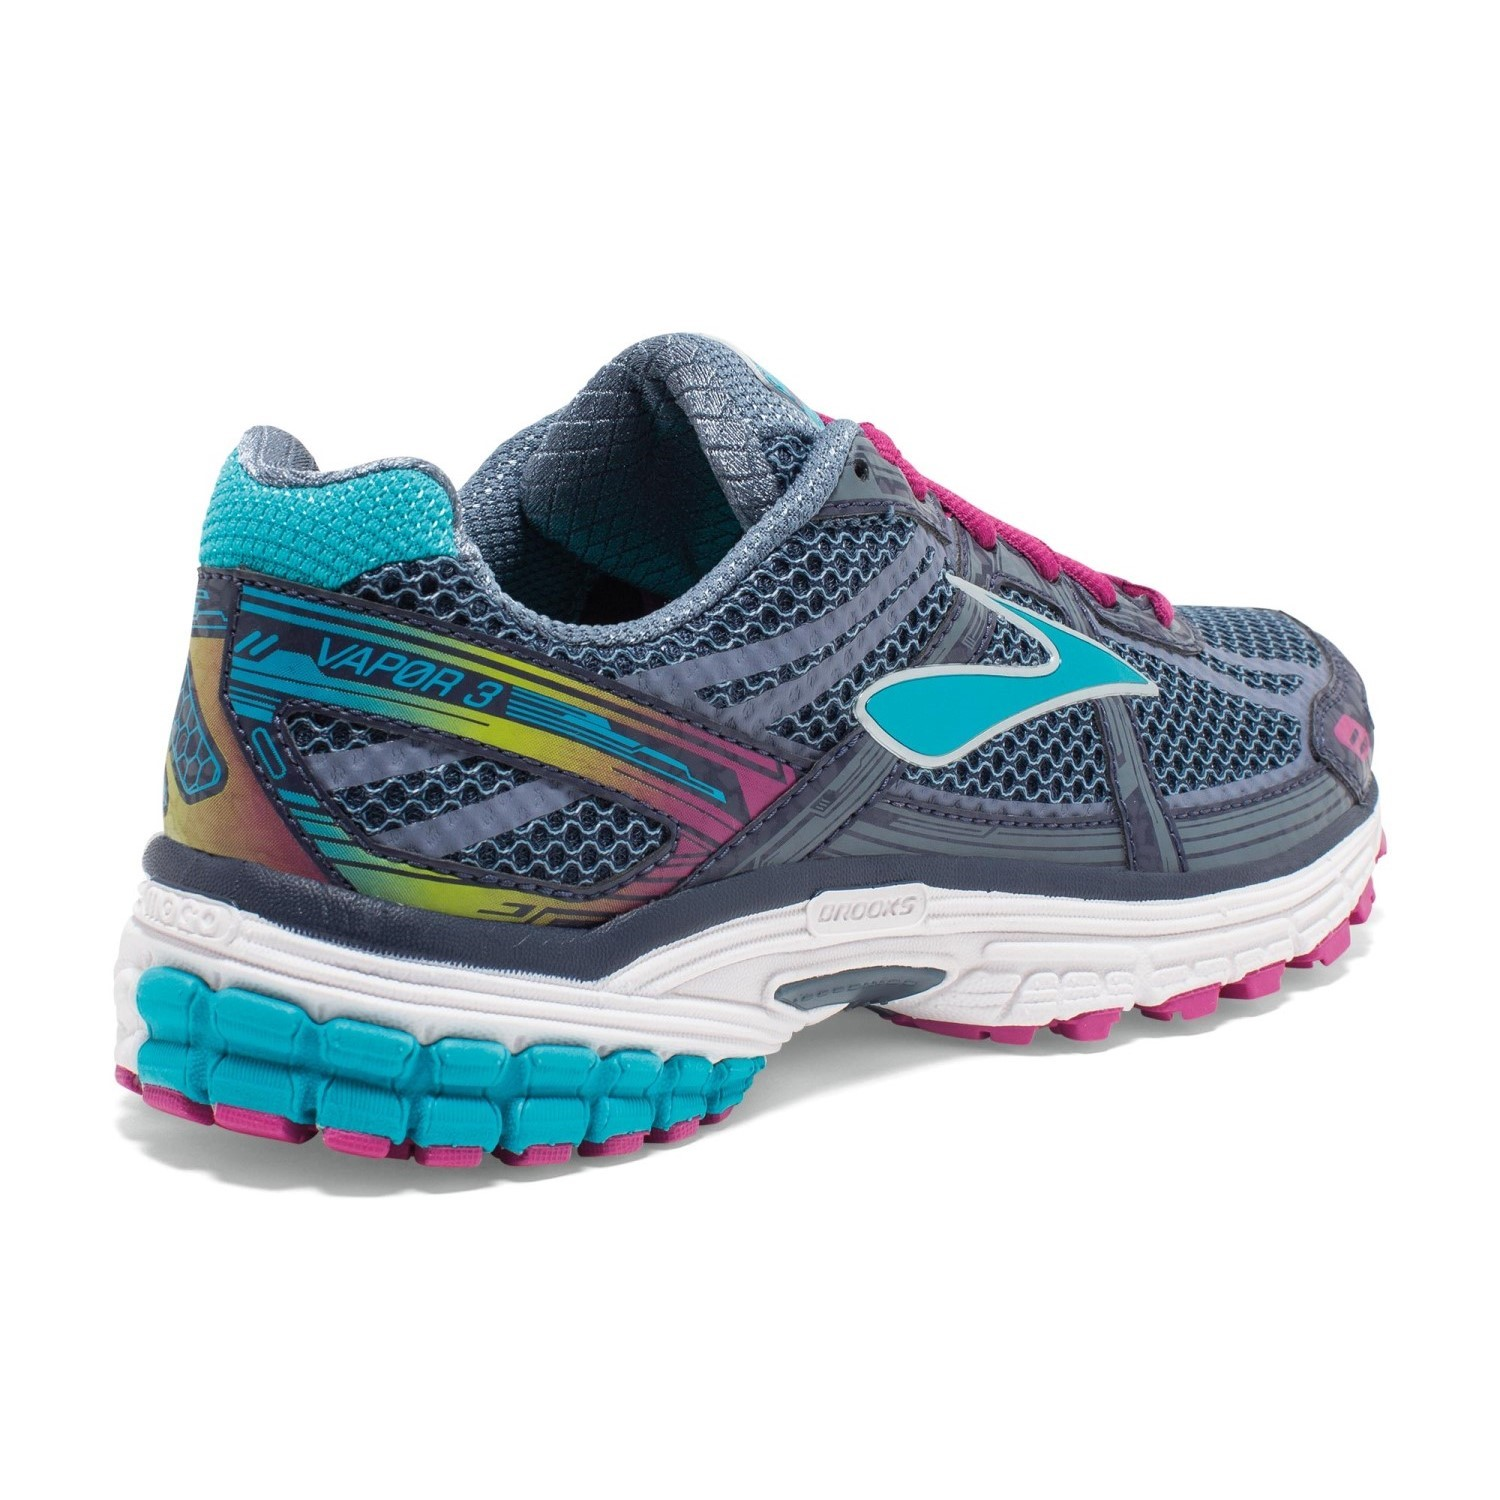 Brooks Vapor 3 - Womens Running Shoes - Peacoat/Blue Bird